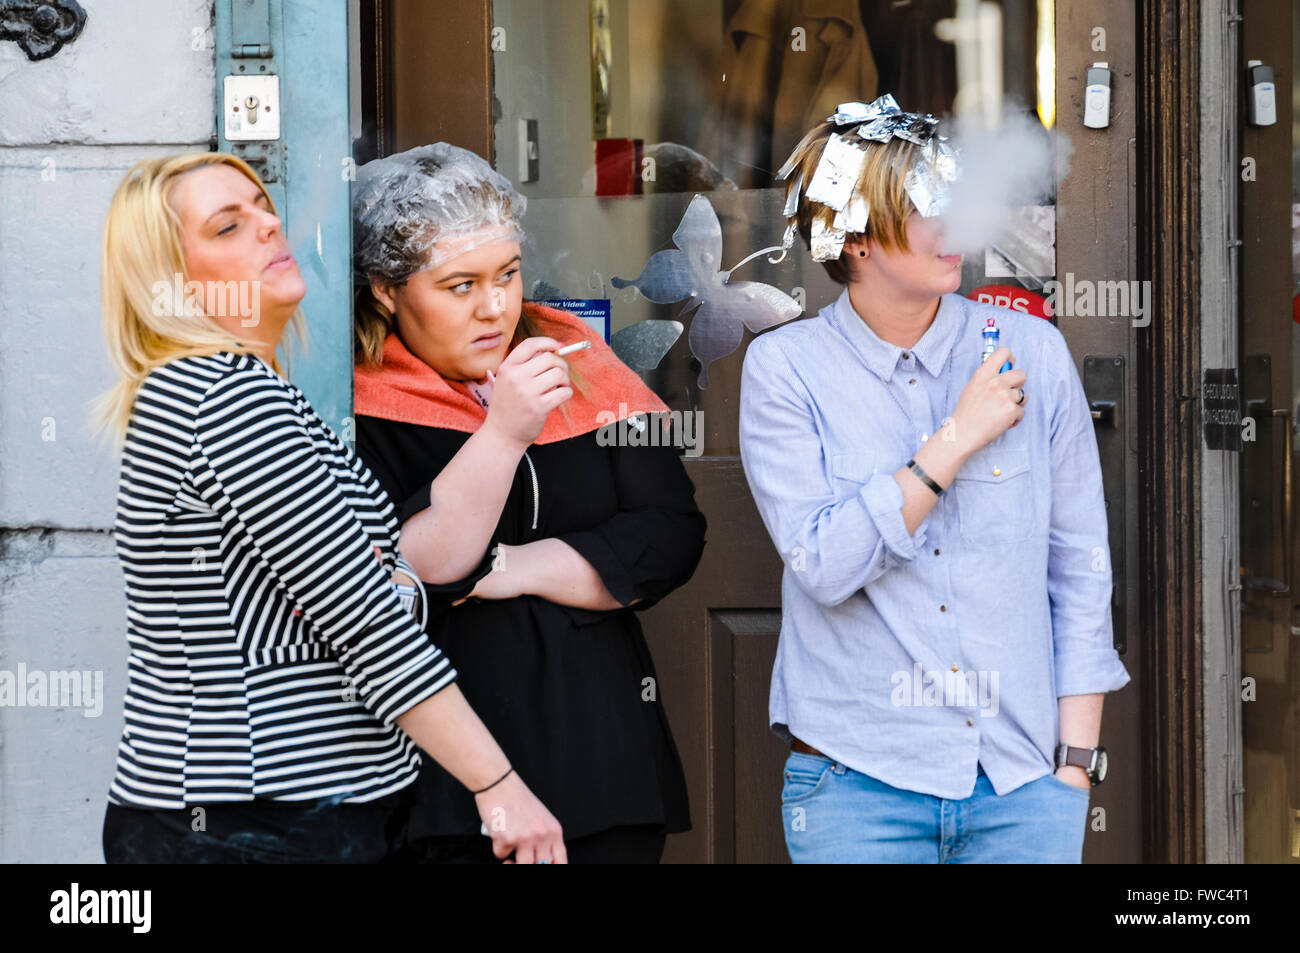 Three women stand at the doorway of a hairdressers shop, smoking and watching something happening. Stock Photo